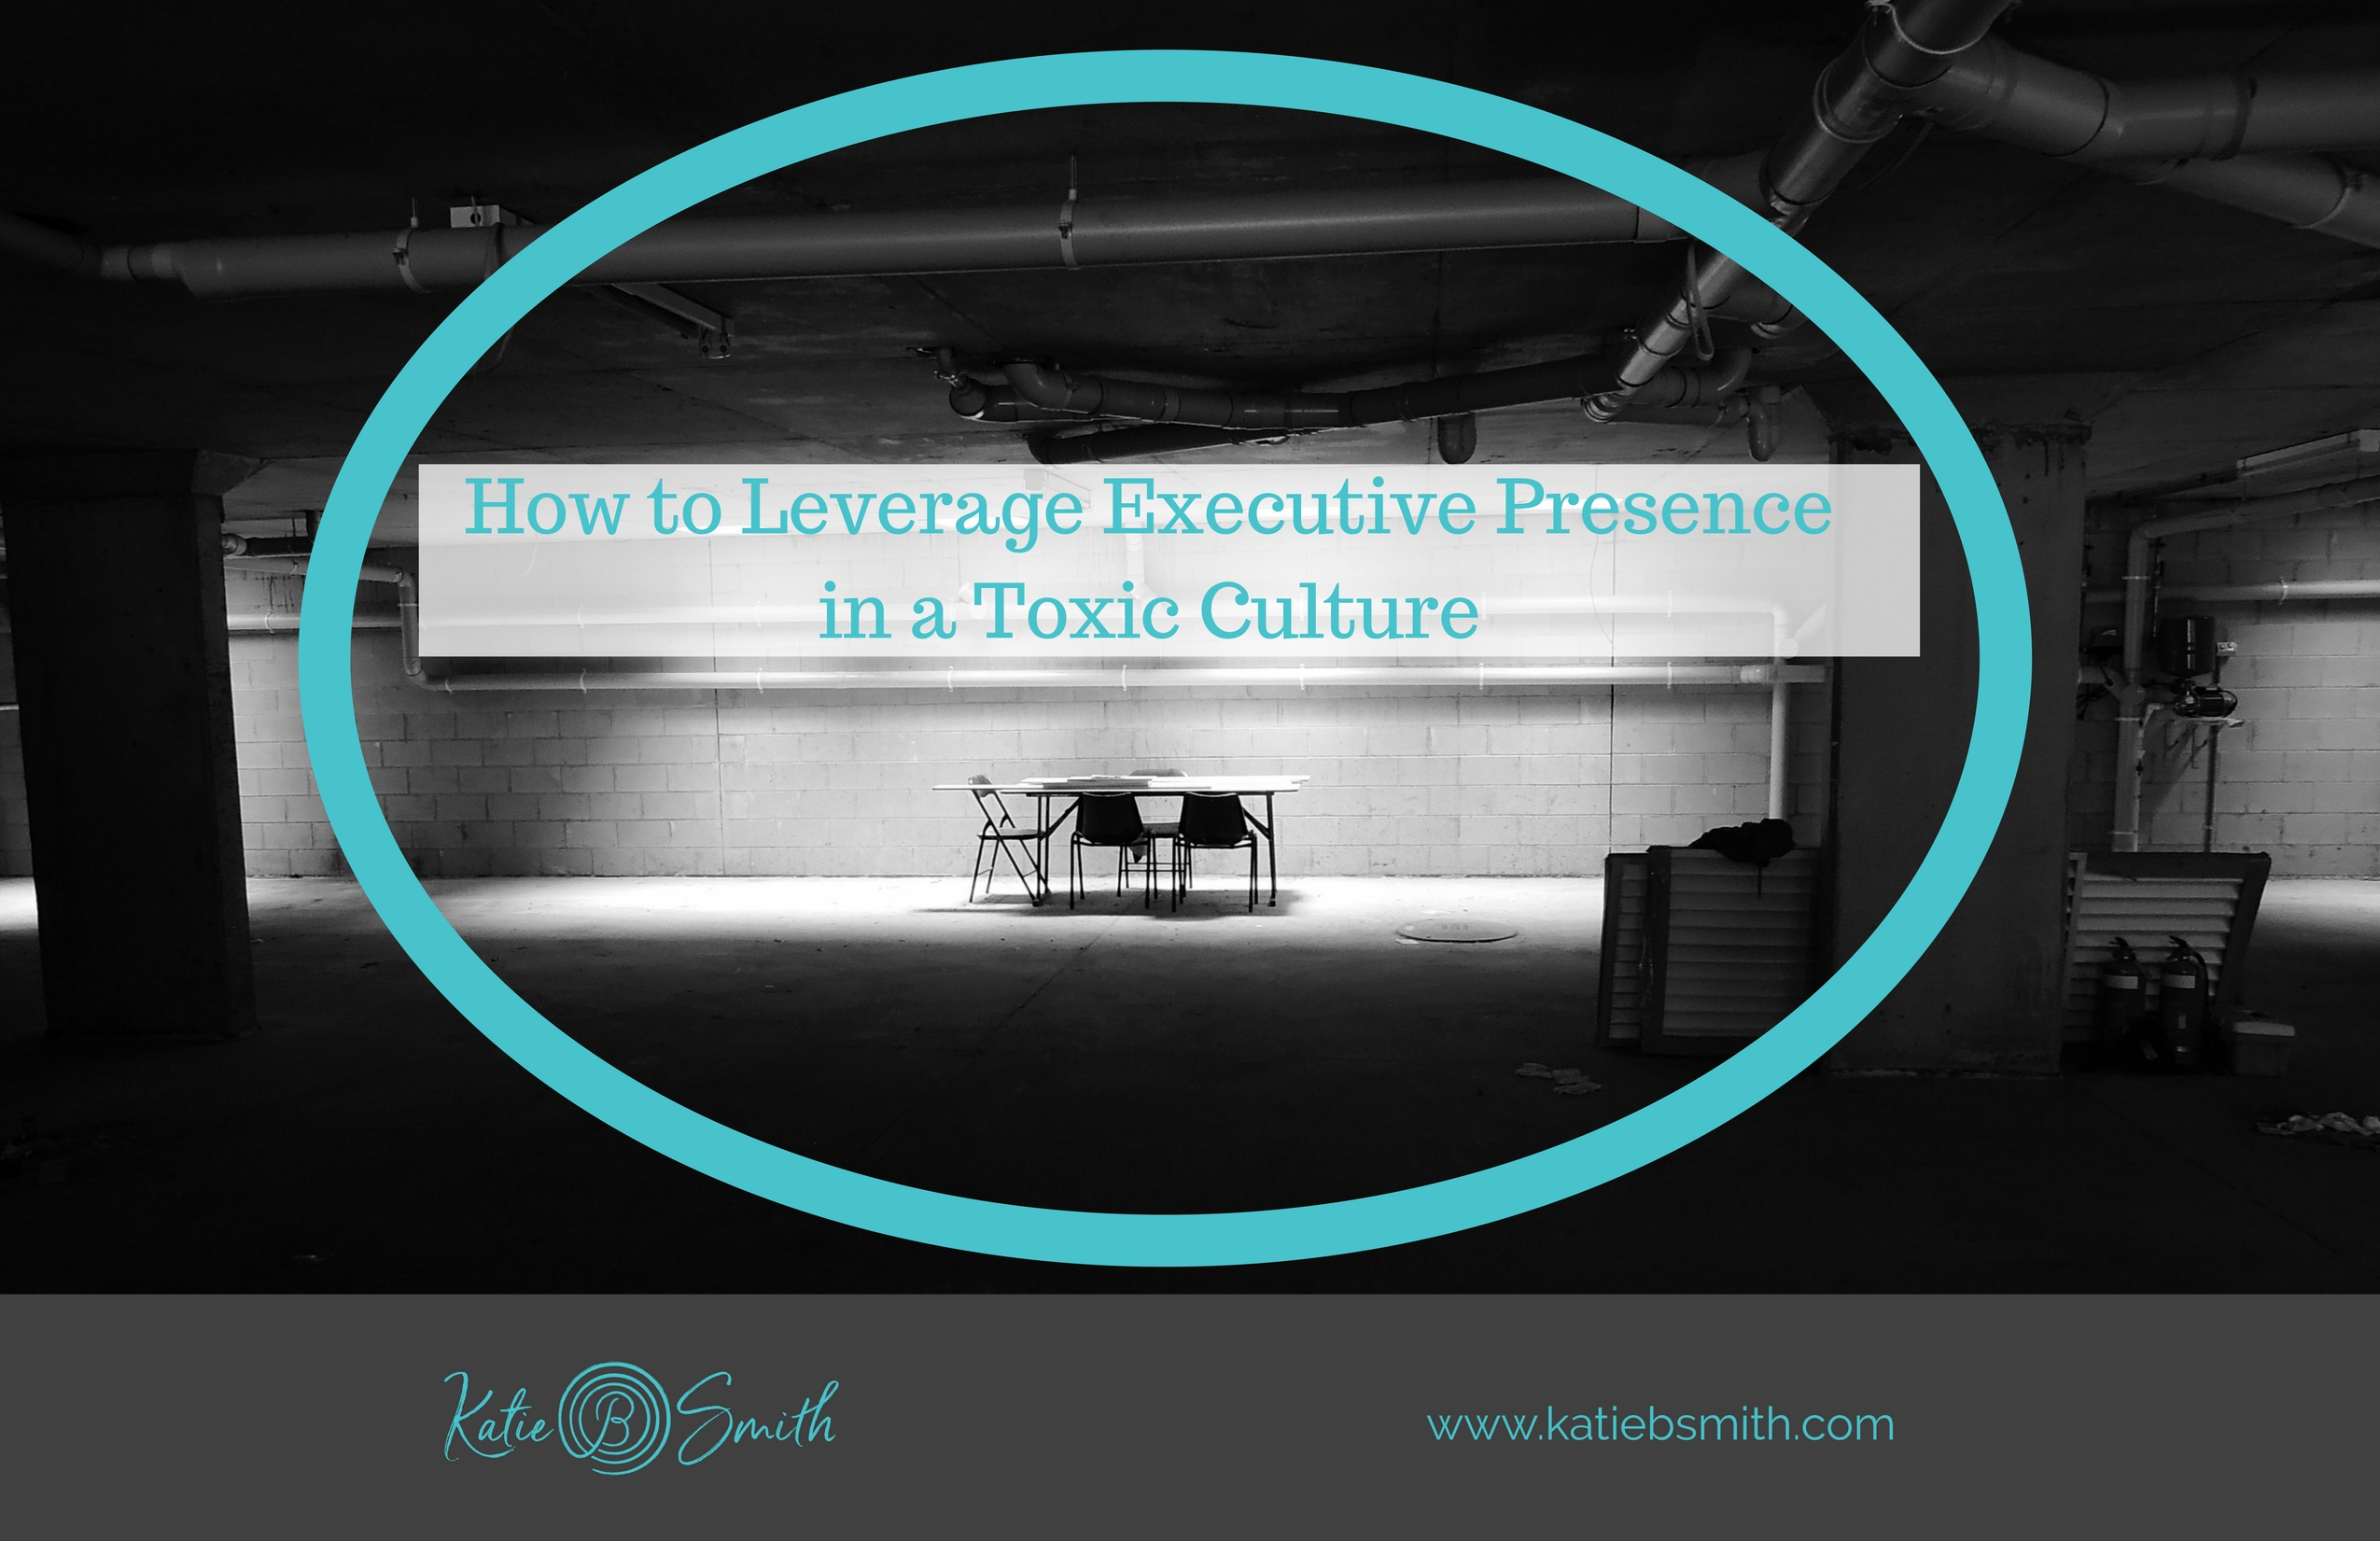 How to Leverage Executive Presence in a Toxic Culture